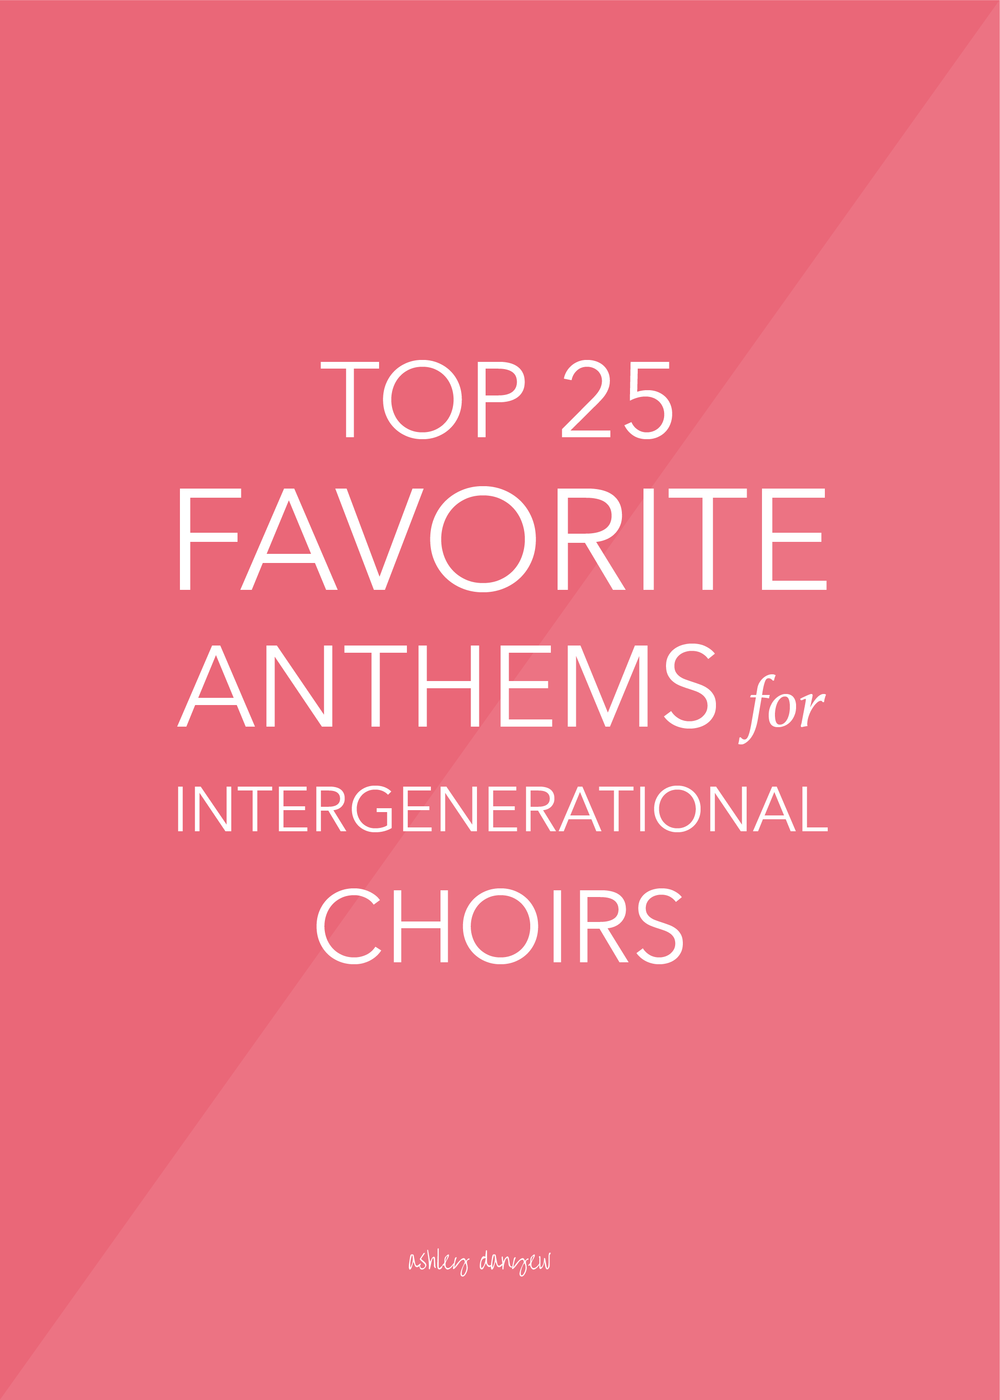 Top 25 Favorite Anthems for Intergenerational Choirs